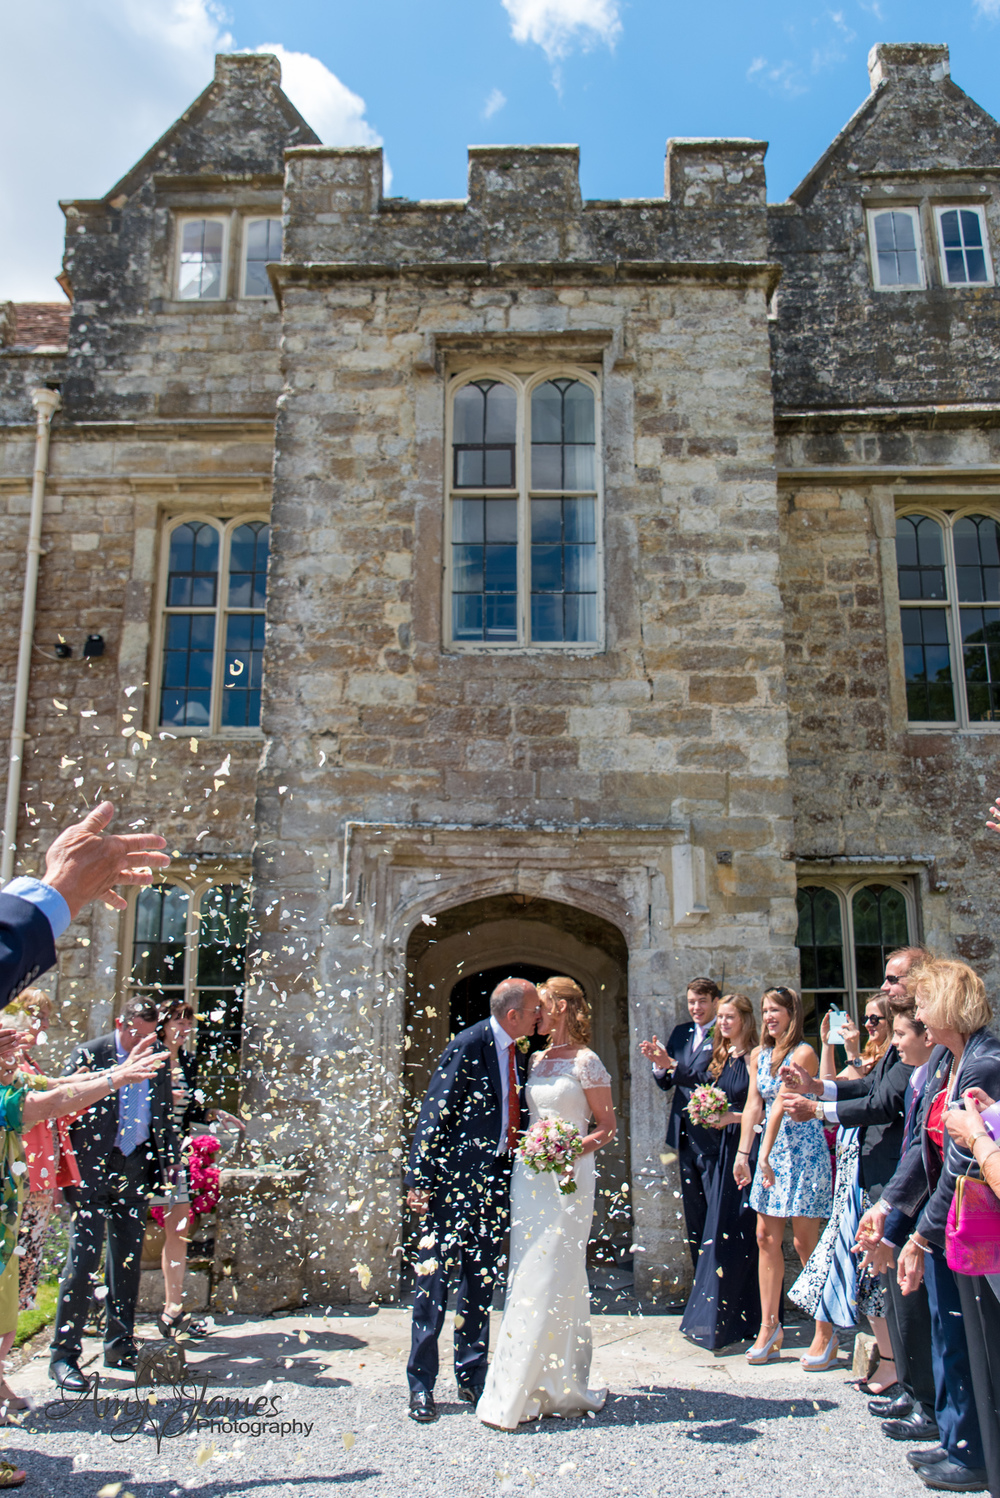 Hampshire wedding photographer // fleet wedding photographer // kent wedding // countryside wedding // confetti photo